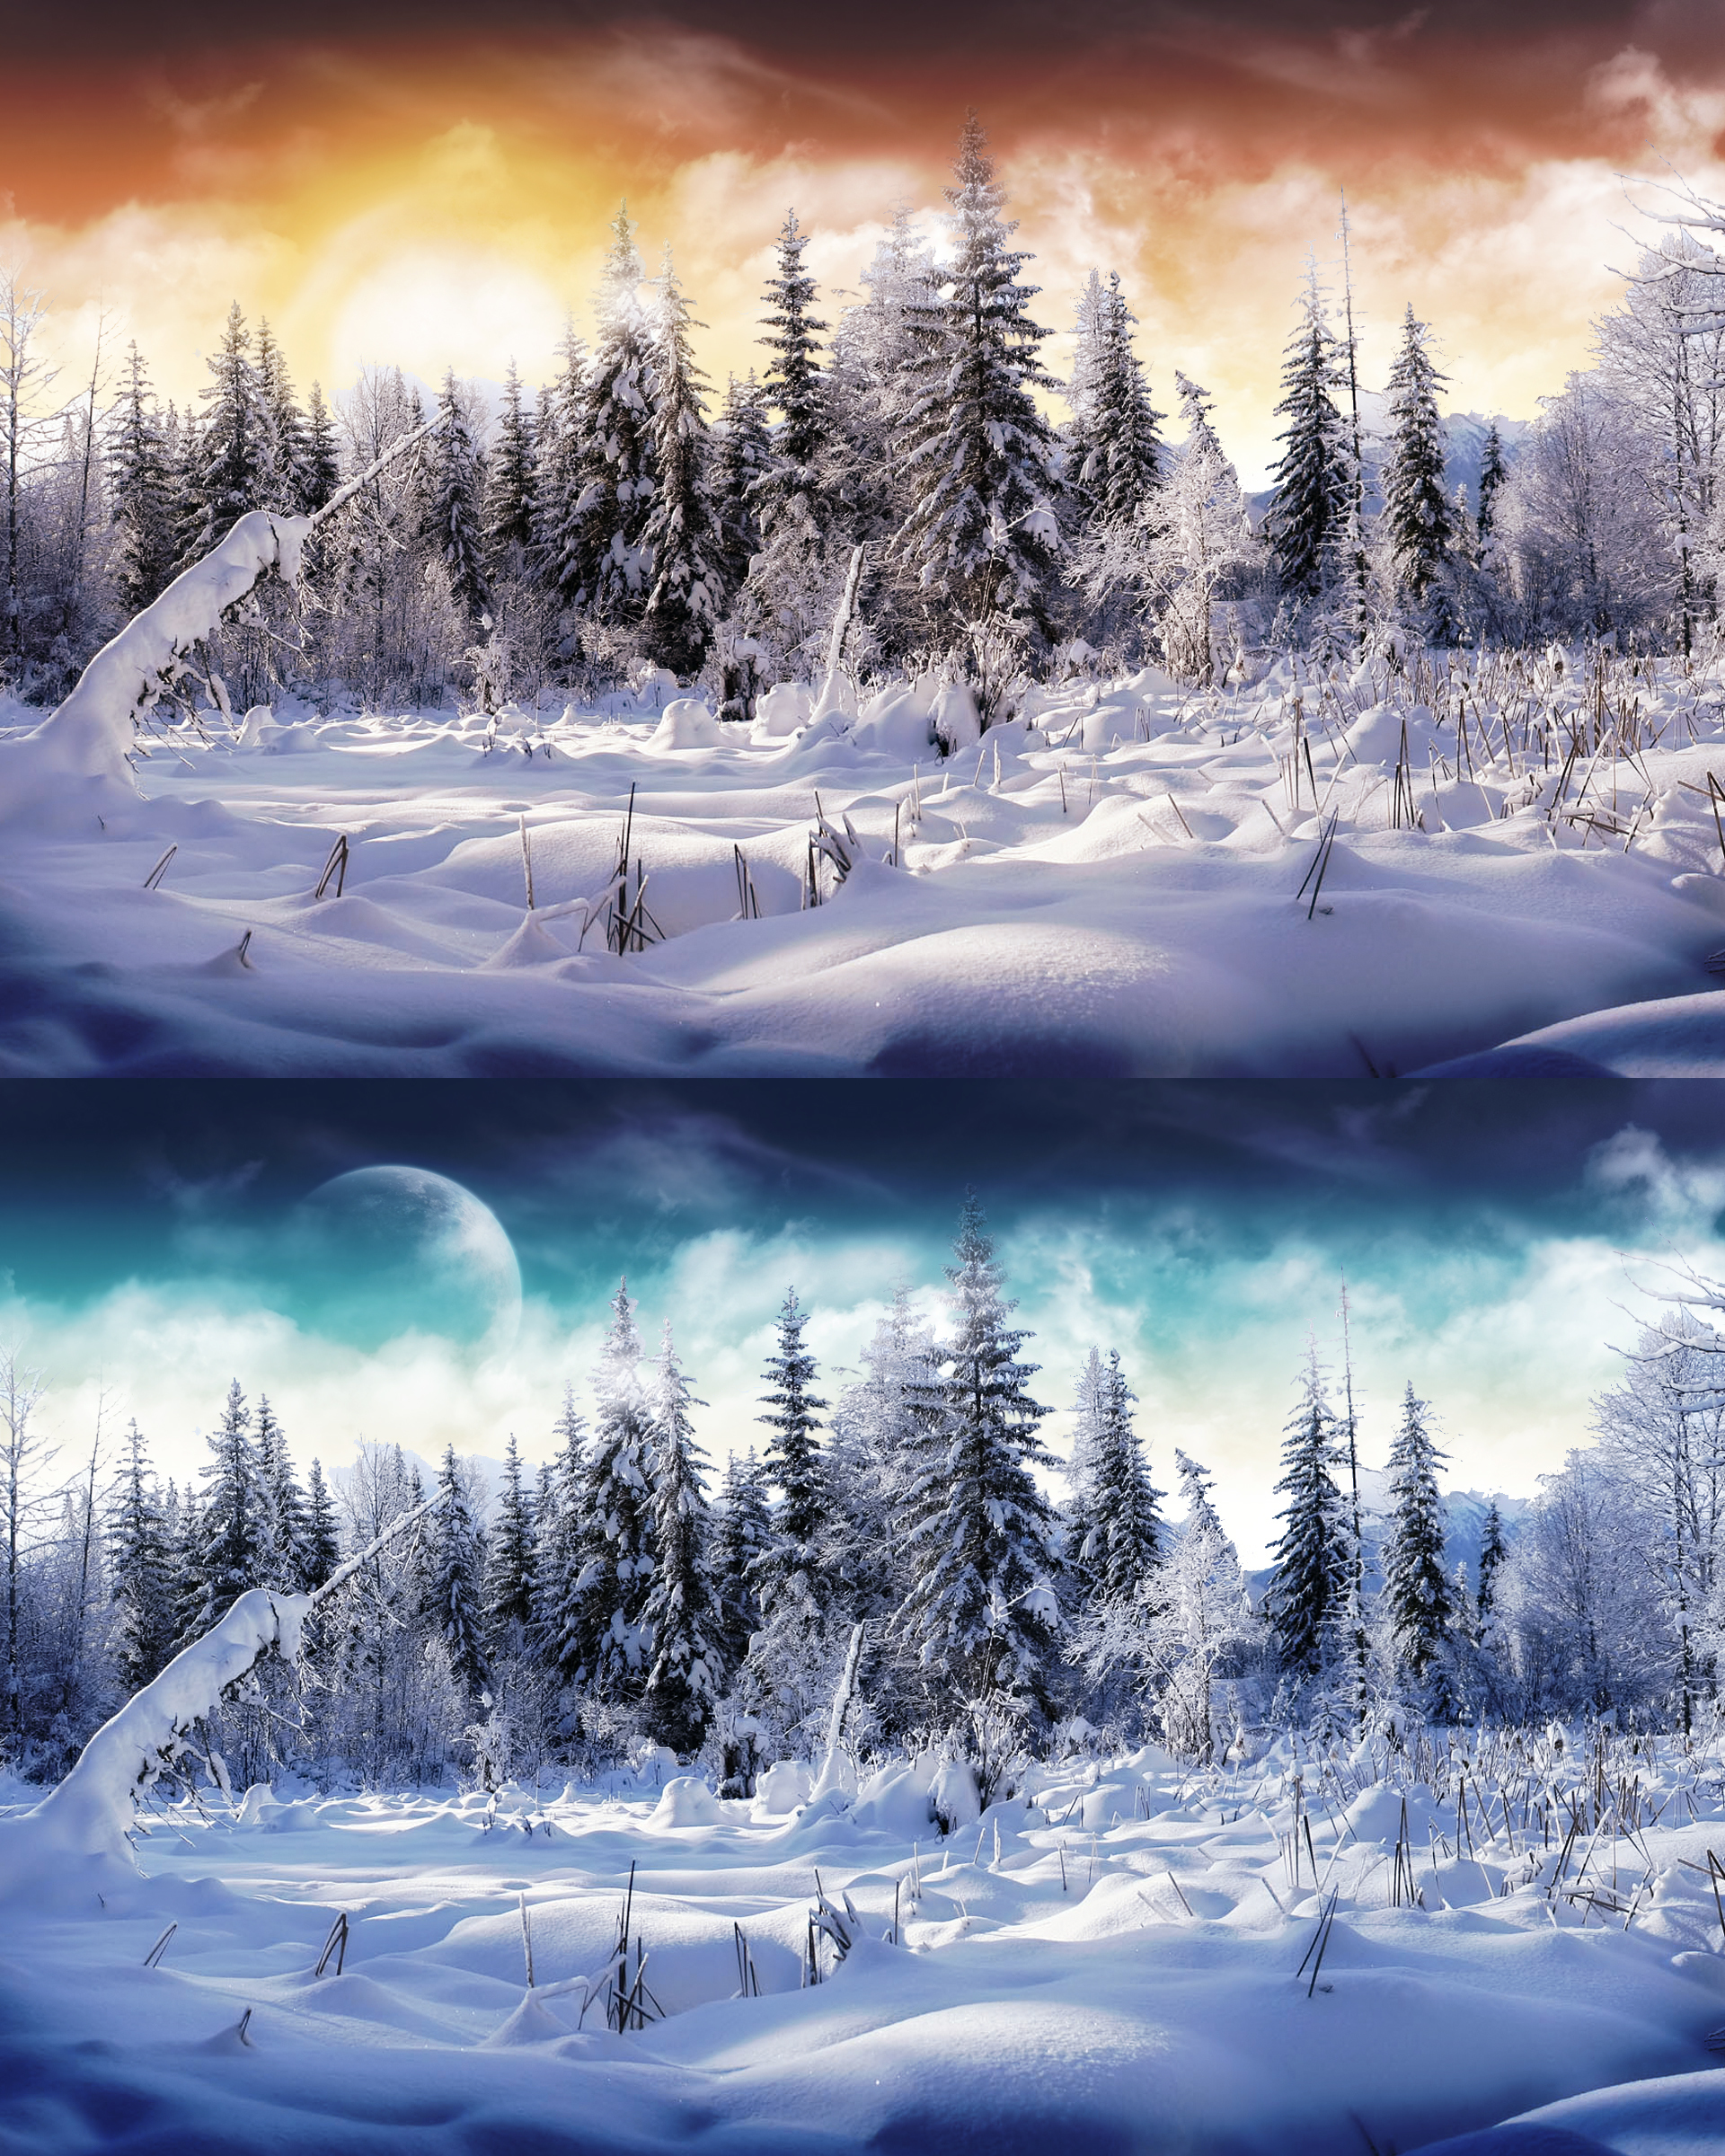 winter Wonderland by nuahs HD Wallpaper